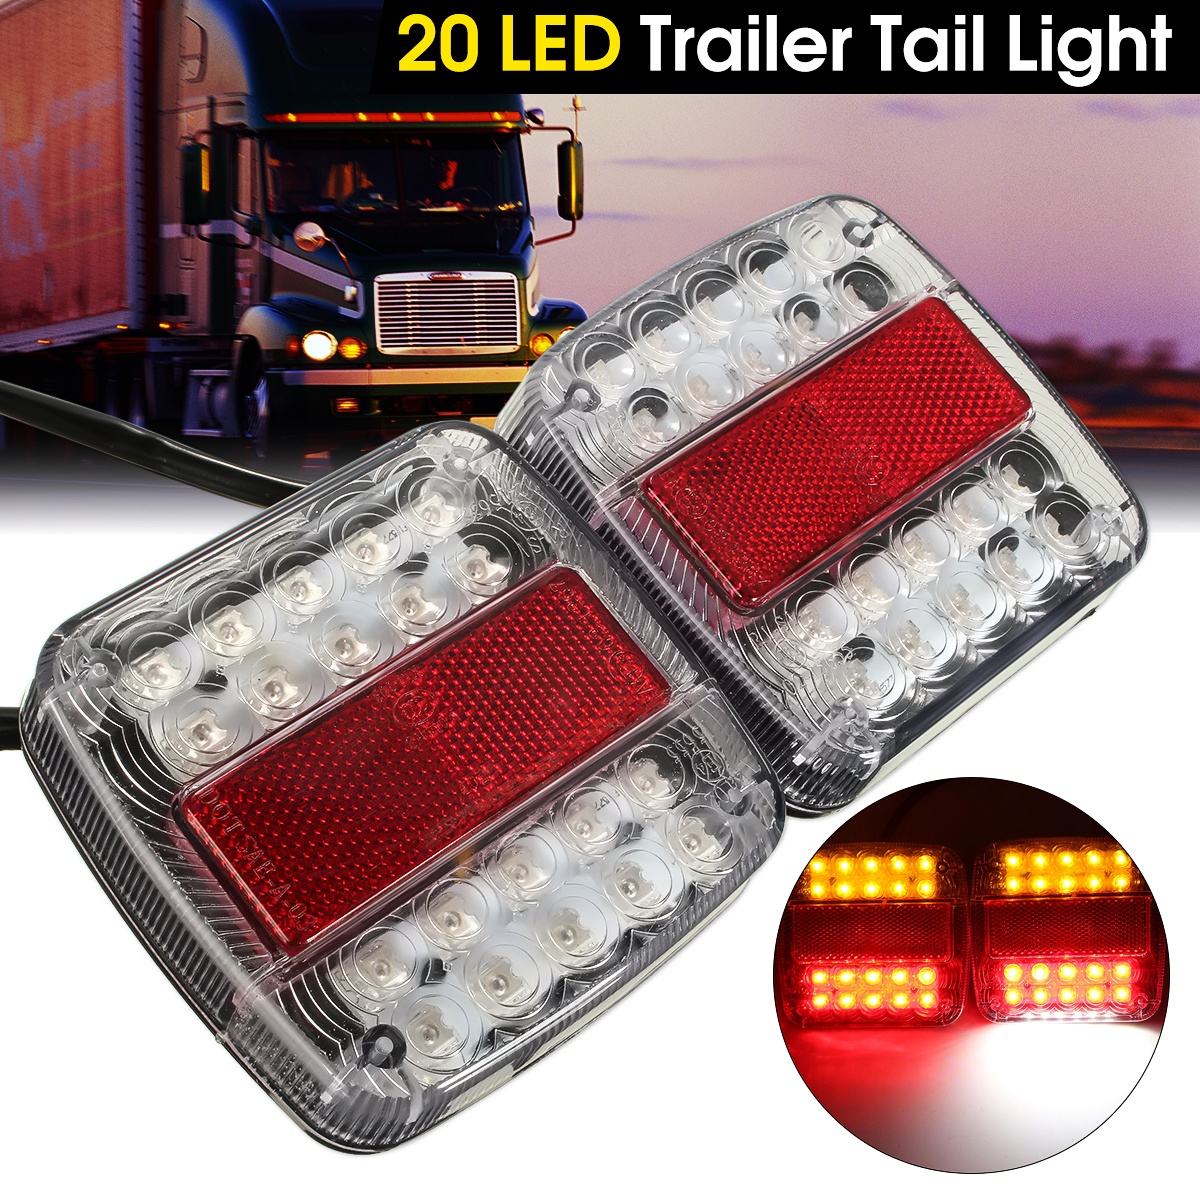 2x 12V 26 LED Taillight Turn Signal Light Rear Brake Stop Light Number License Plate Lamp For Car Truck Trailer E-Marked сплит системы mitsubishi electric msz ef25veb muz ef25ve черный